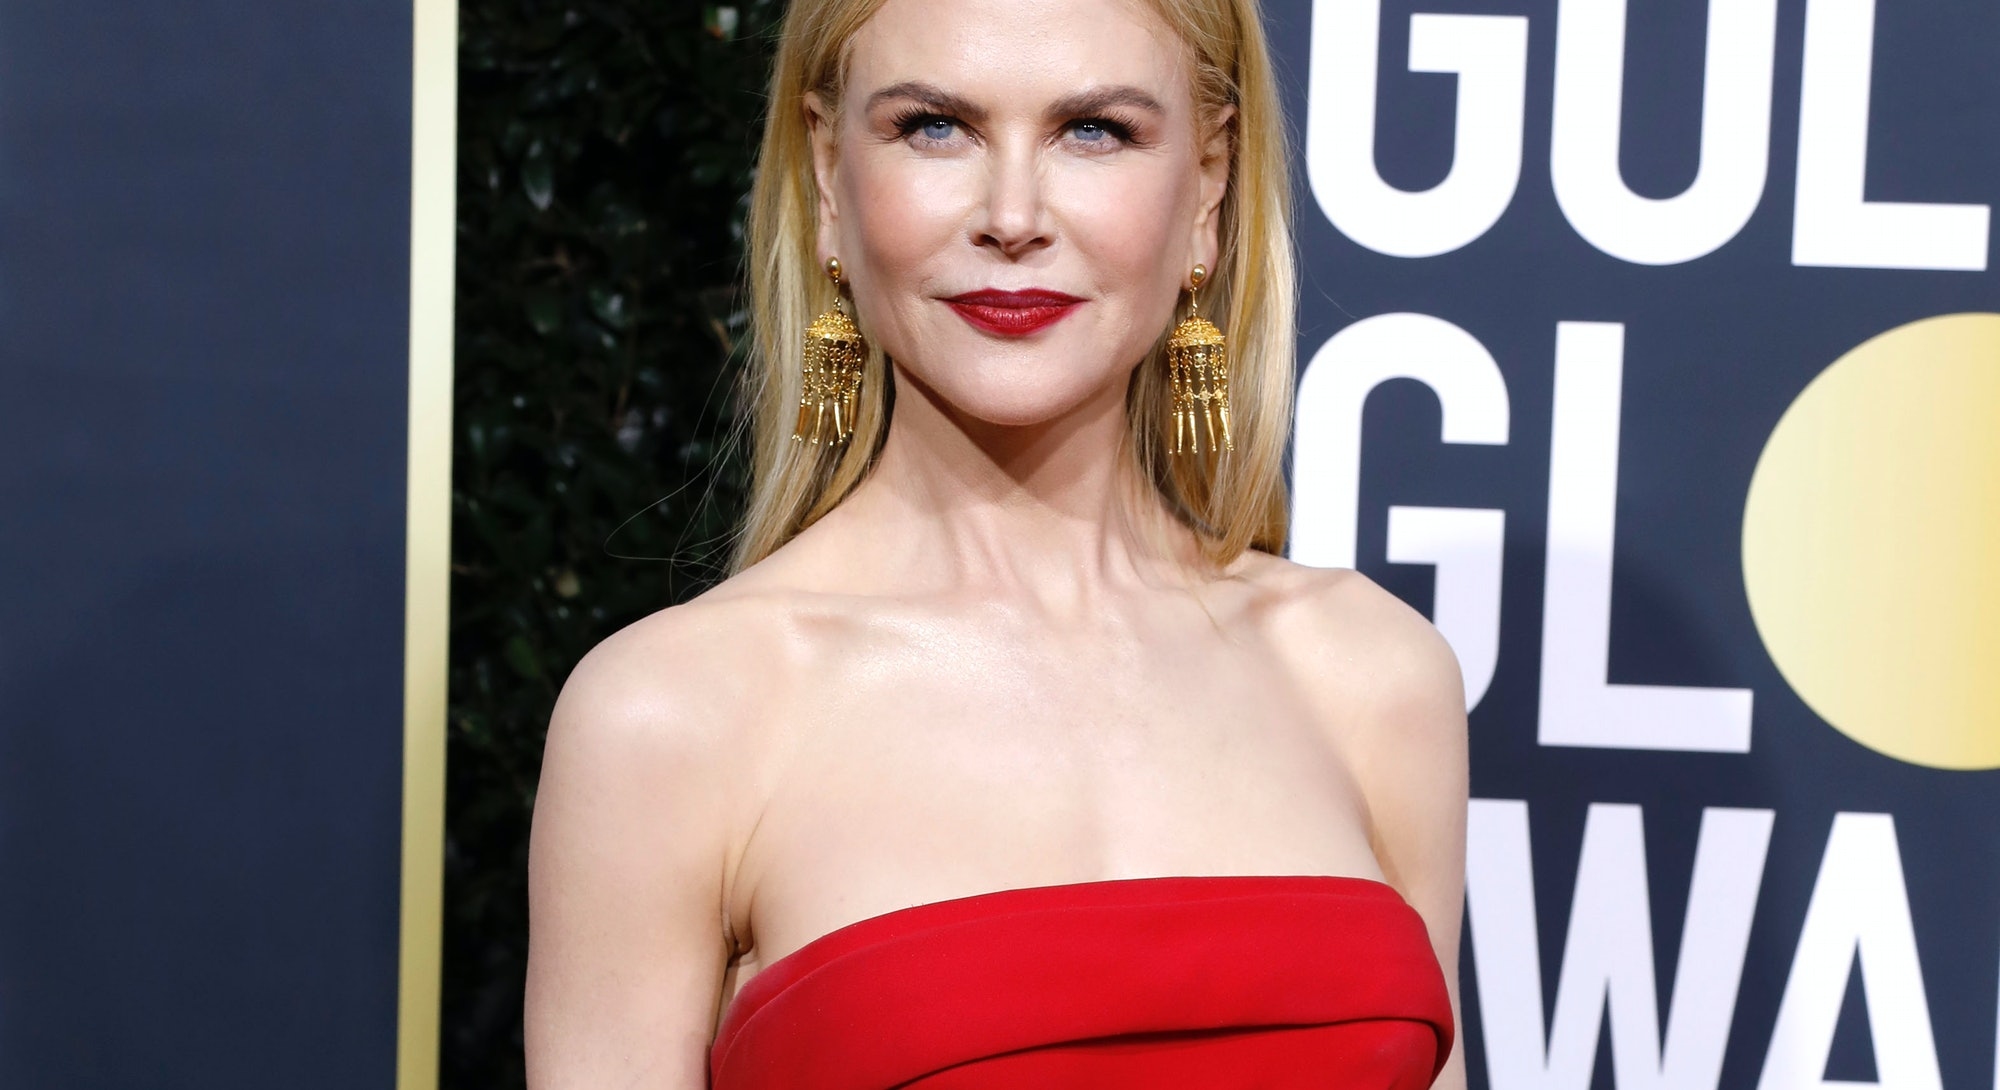 Nicole Kidman is an acting chameleon with impressive transformations for roles. PHOTOGRAPH BY P. Leh...